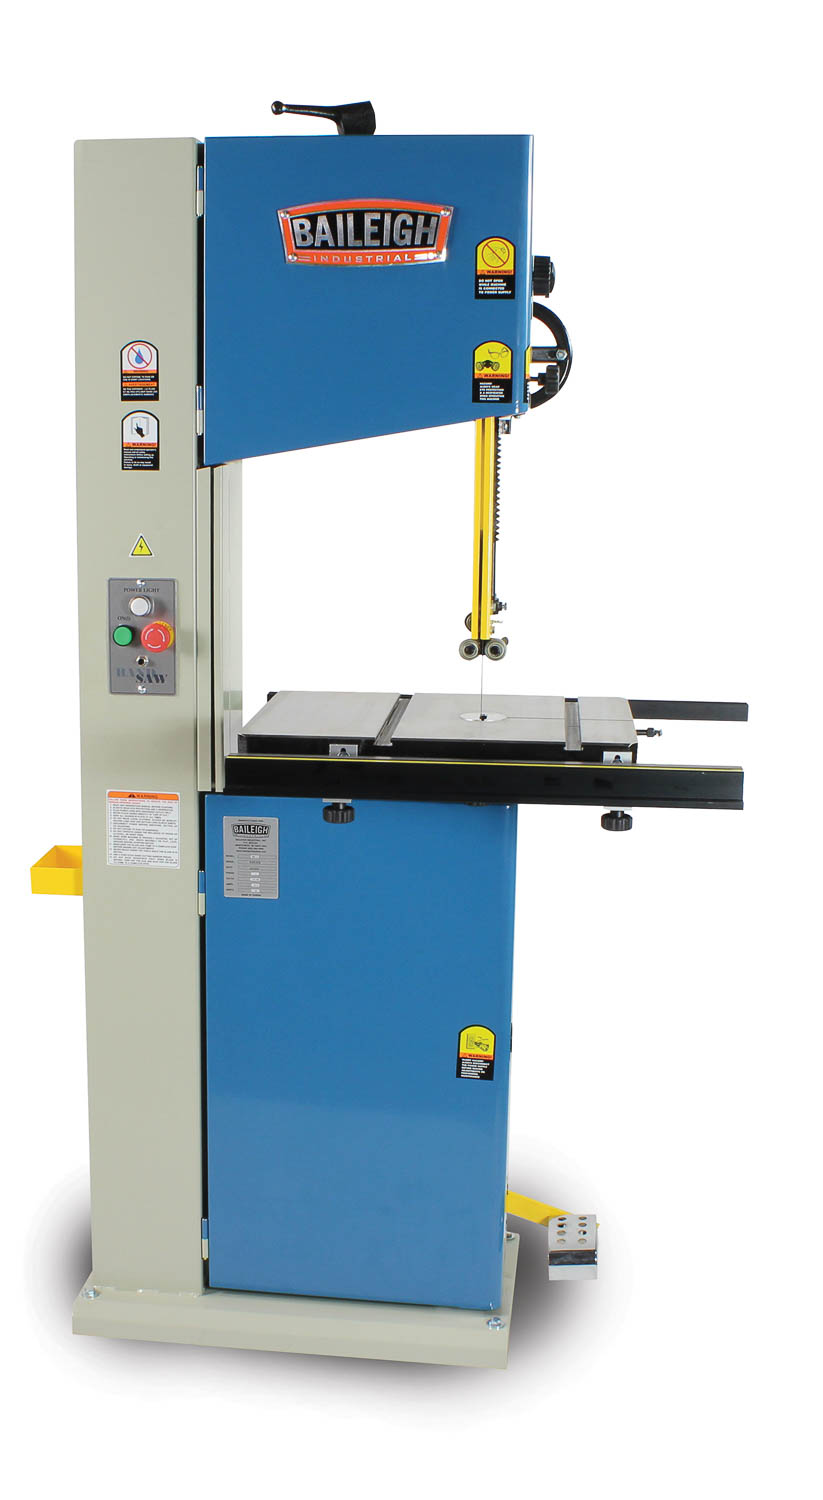 Baileigh Band Saw Woodworking Band Saws Baileigh